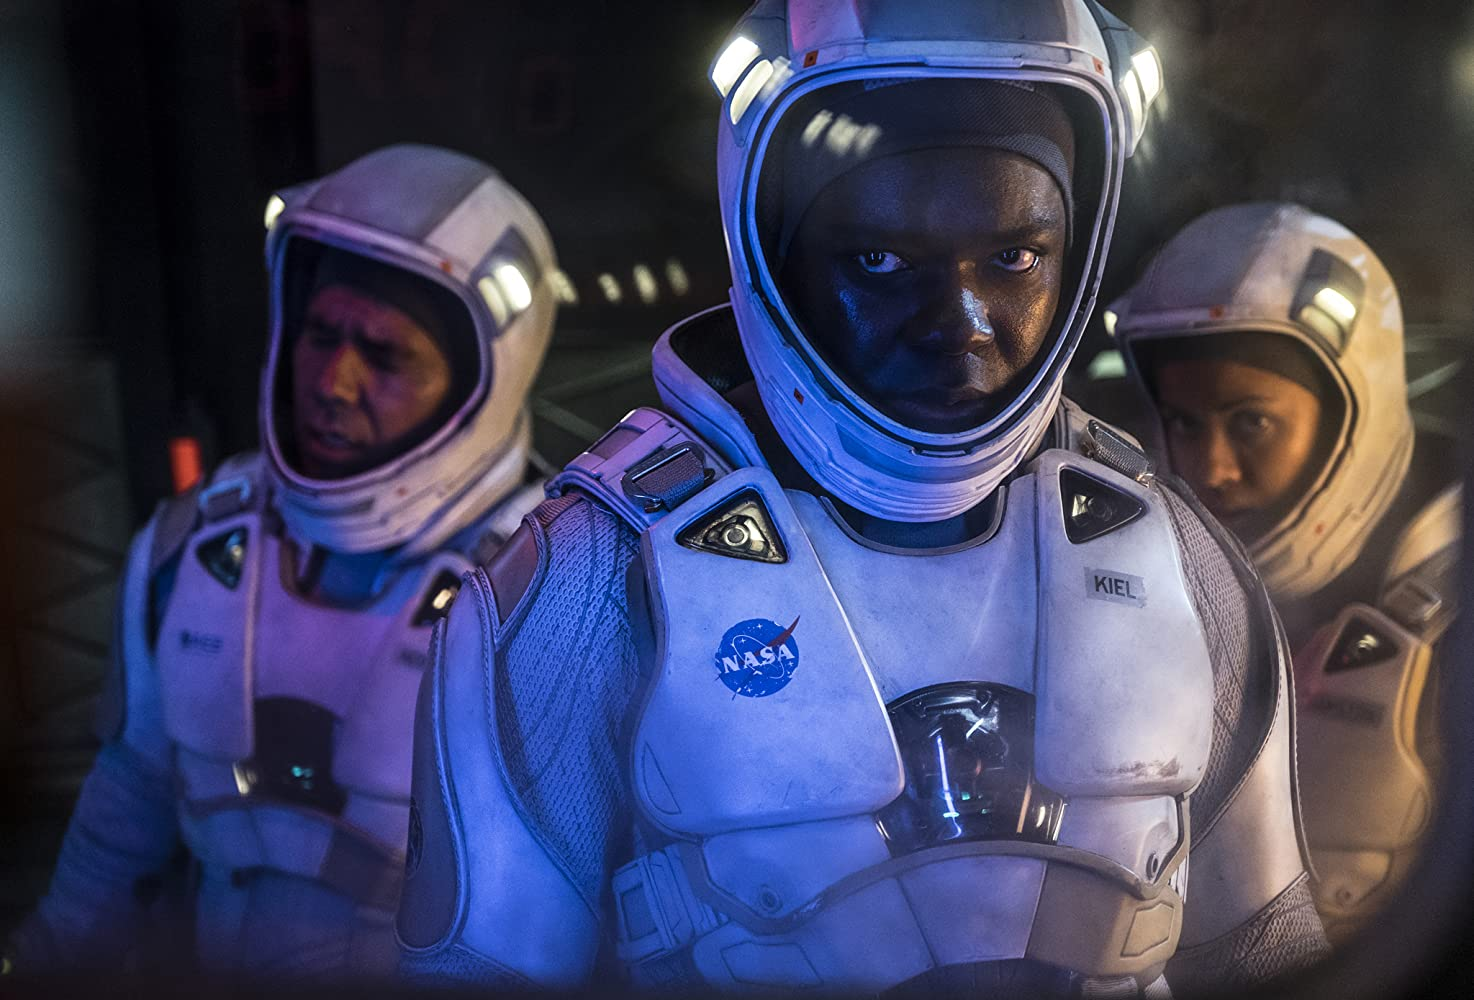 John Ortiz, David Oyelowo, and Gugu Mbatha-Raw in The Cloverfield Paradox (2018)